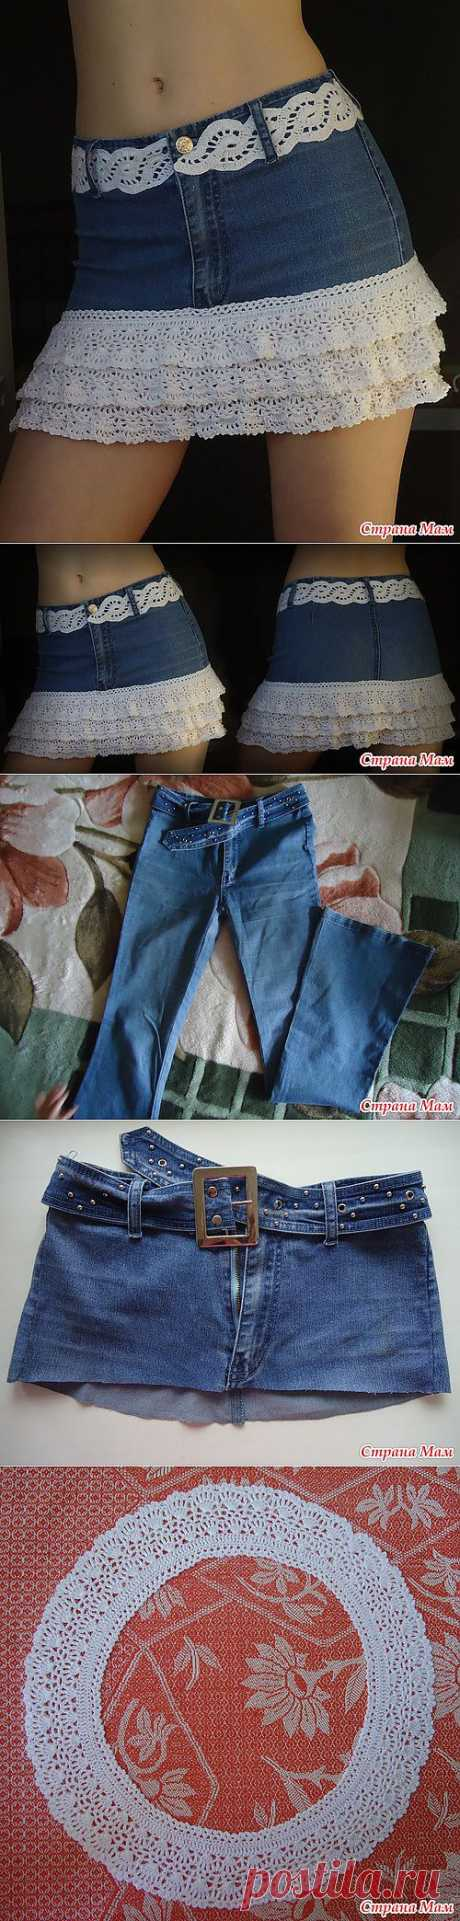 From old jeans new skirt